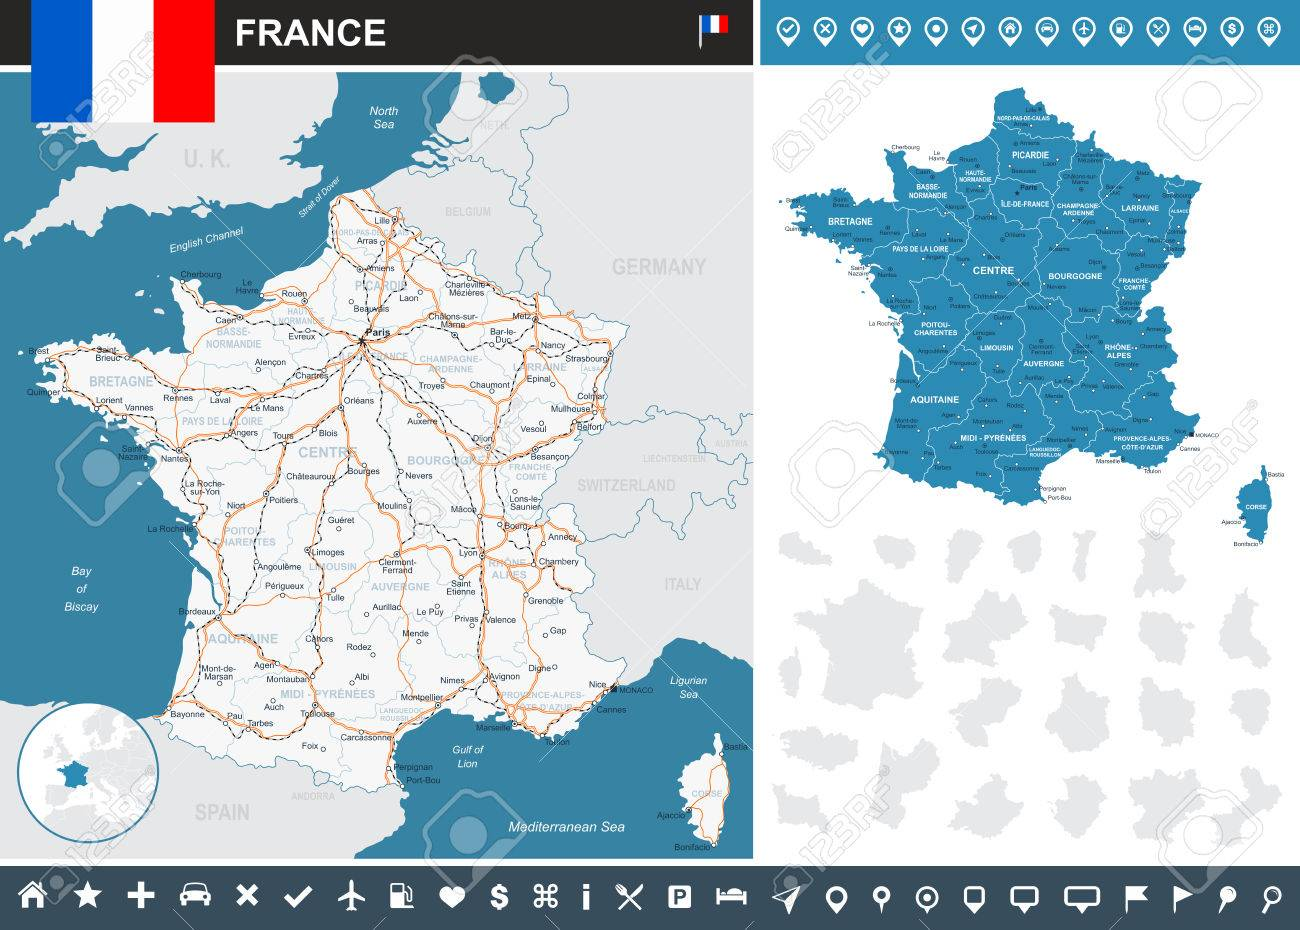 Map Of France With City Names.France Infographic Map Highly Detailed Vector Illustration